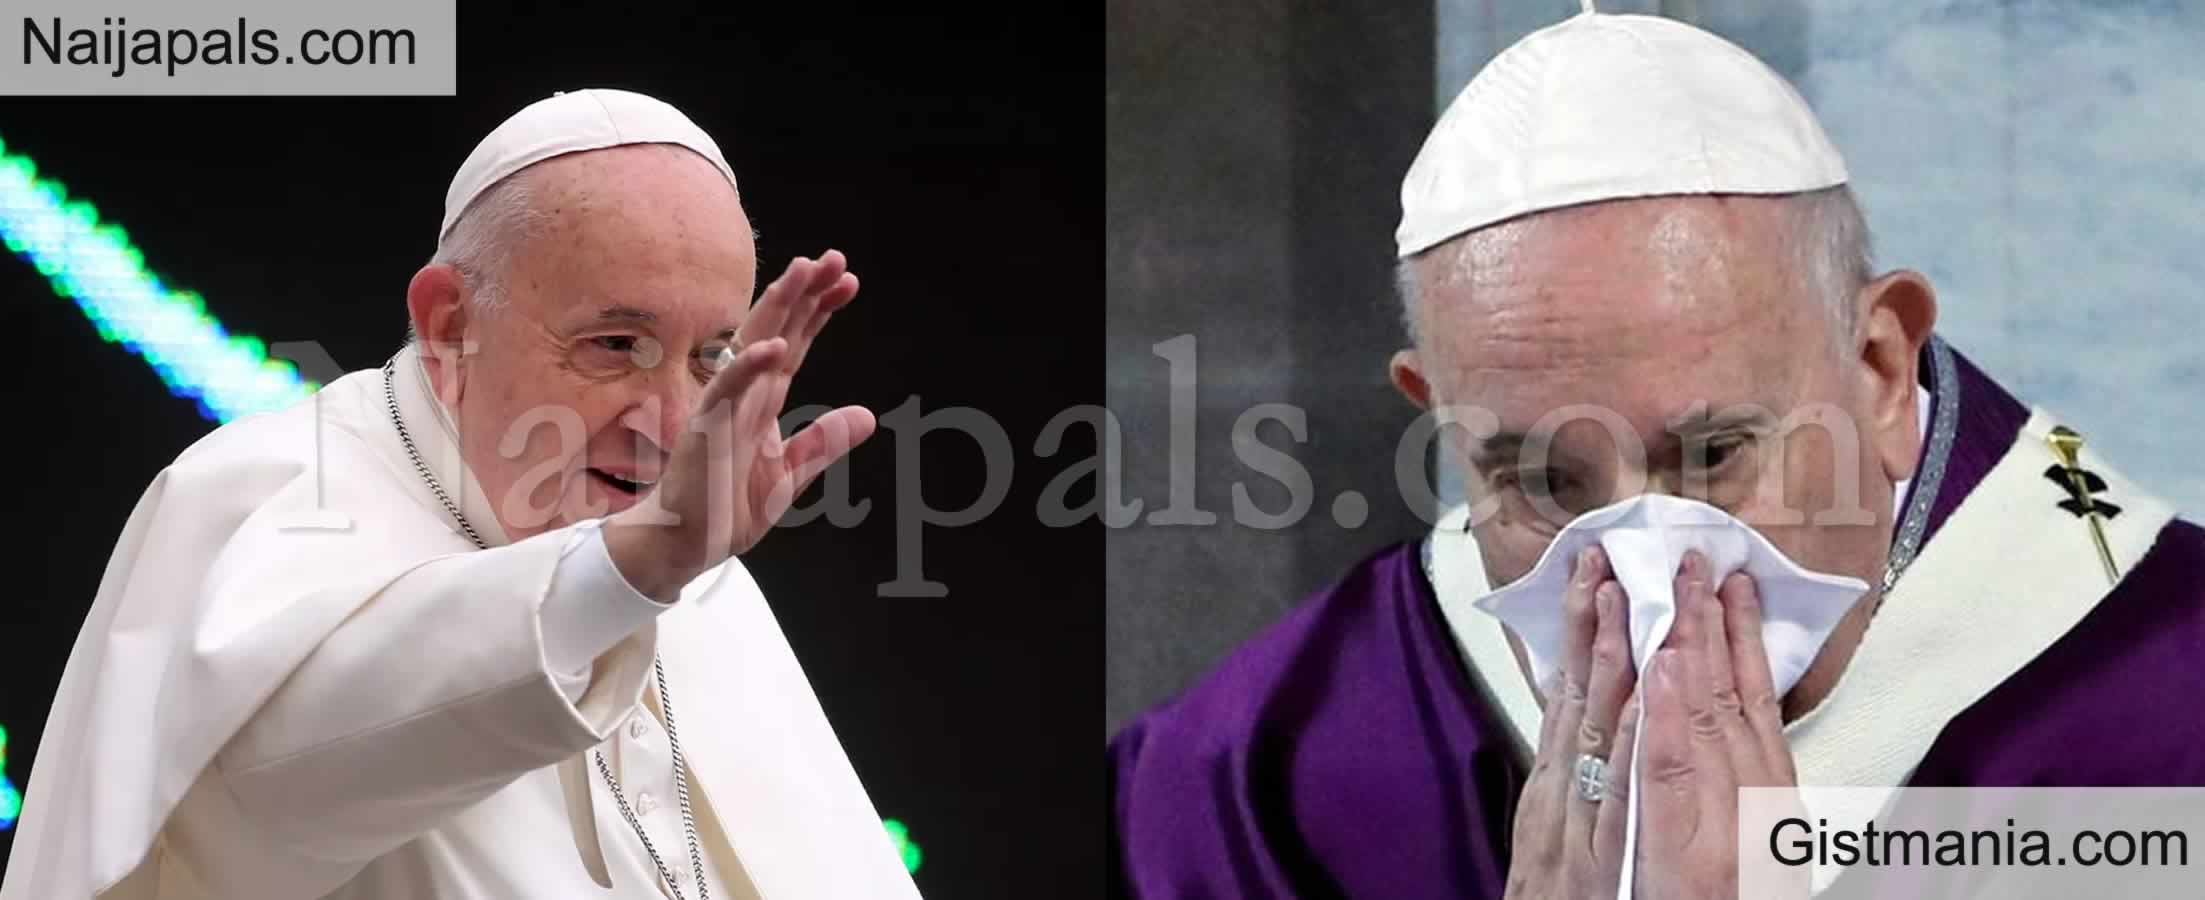 Pope Francis At It Again, Gives Catholic Priests The Right To Forgive Women Who Have Had Abortions